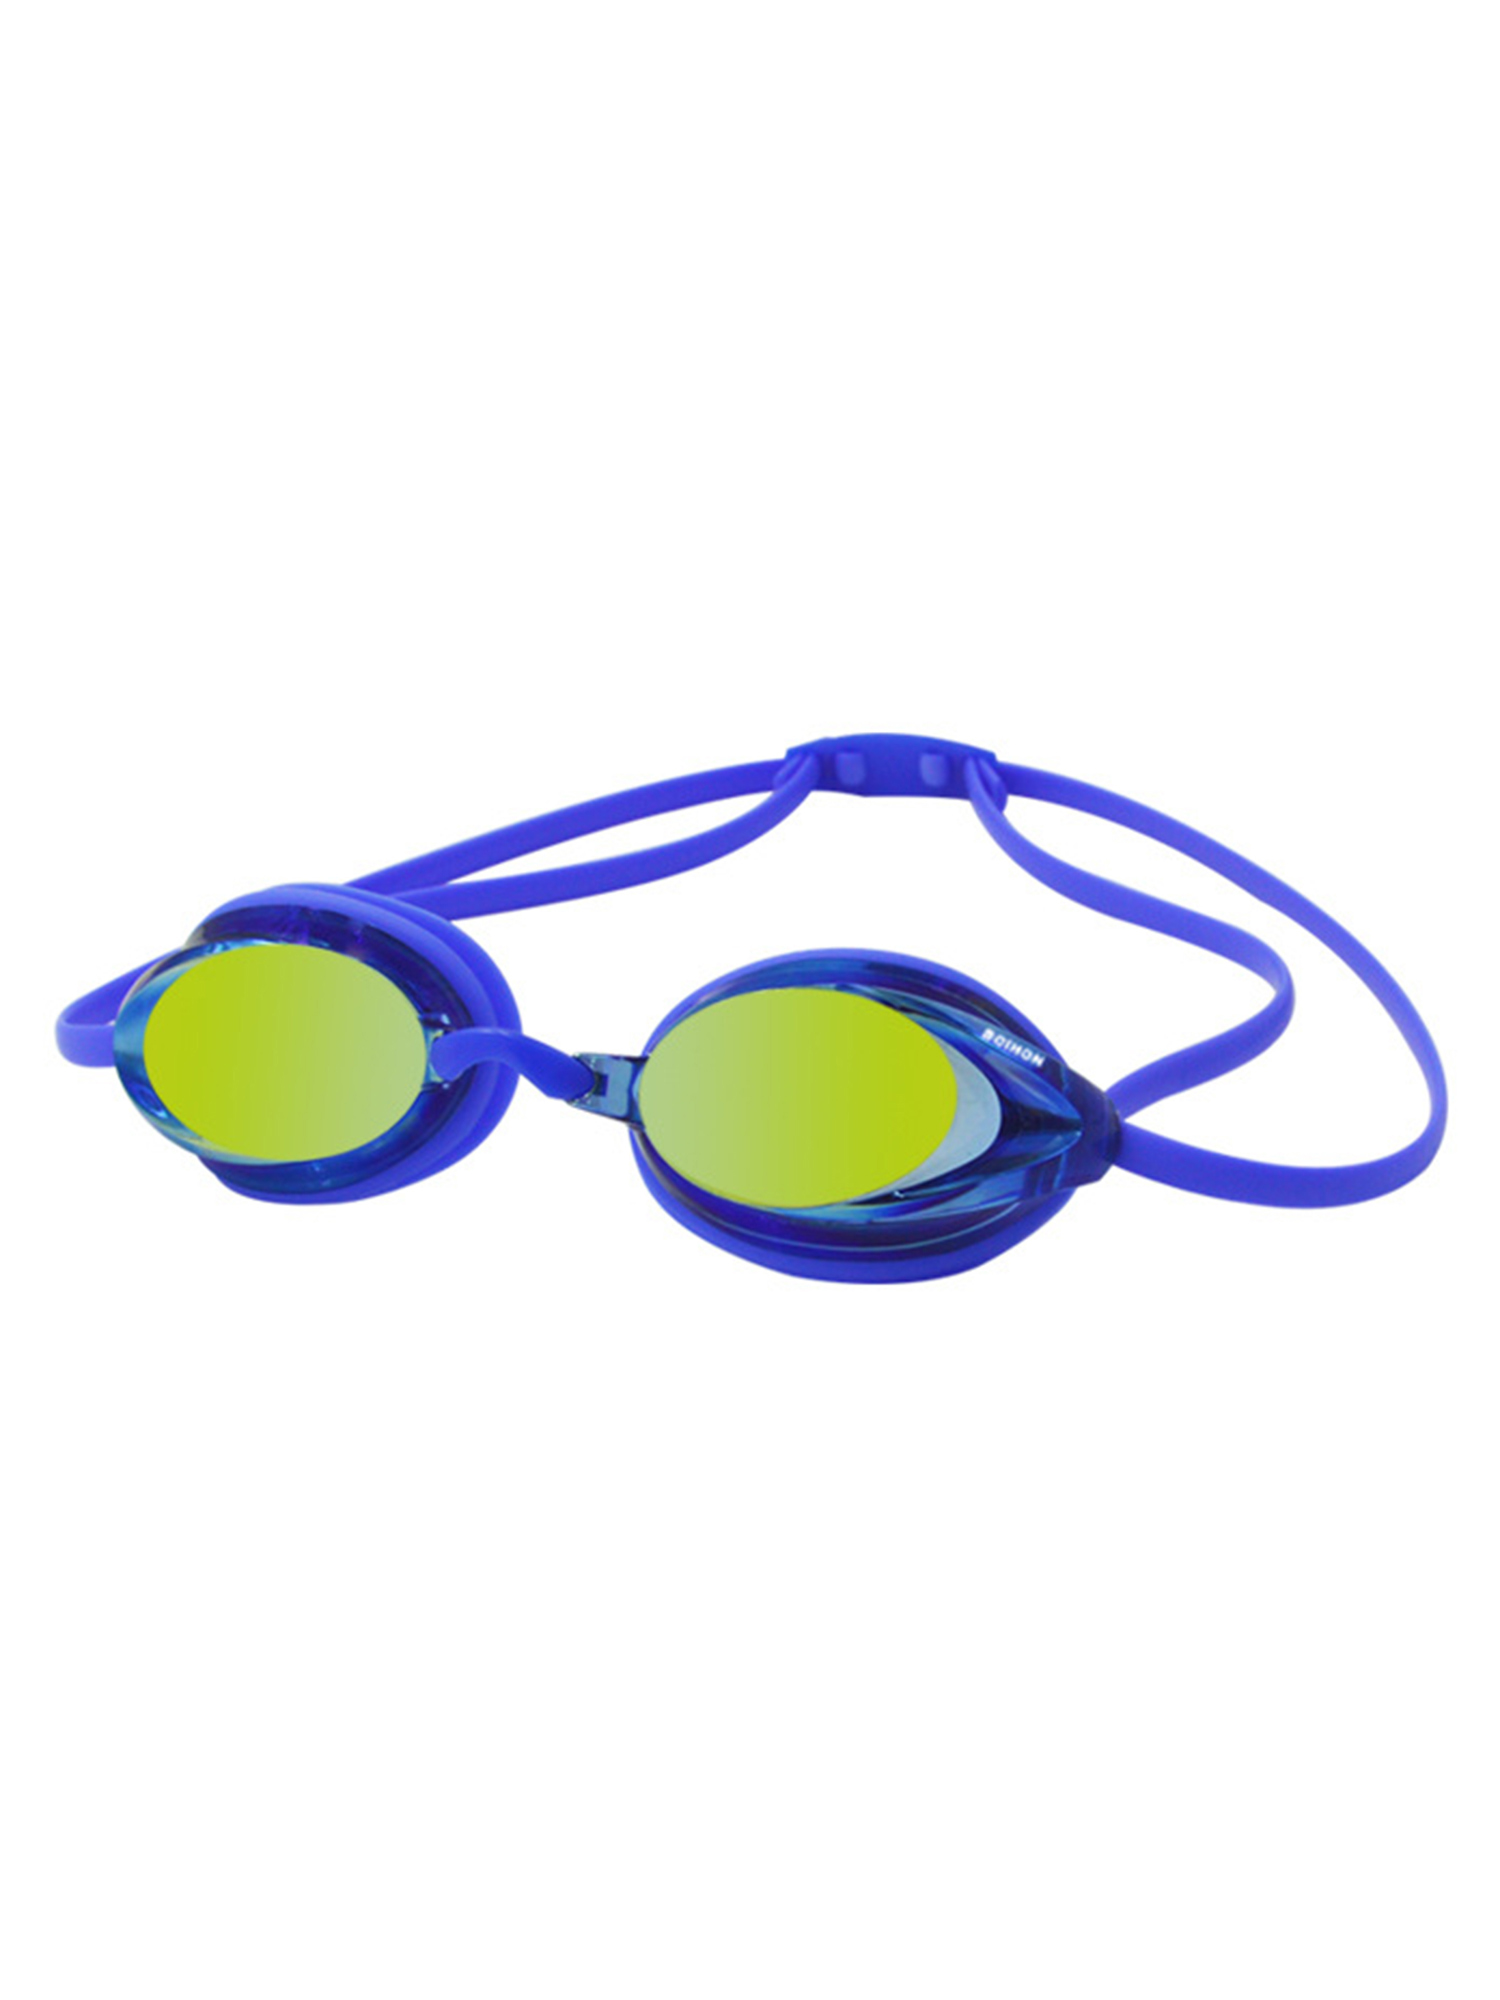 Topcobe Swimming Goggles for Adults, T59BK01 No Leaking Anti-Fog UV Protection Swim Goggles for Adult Men Women Youth... by